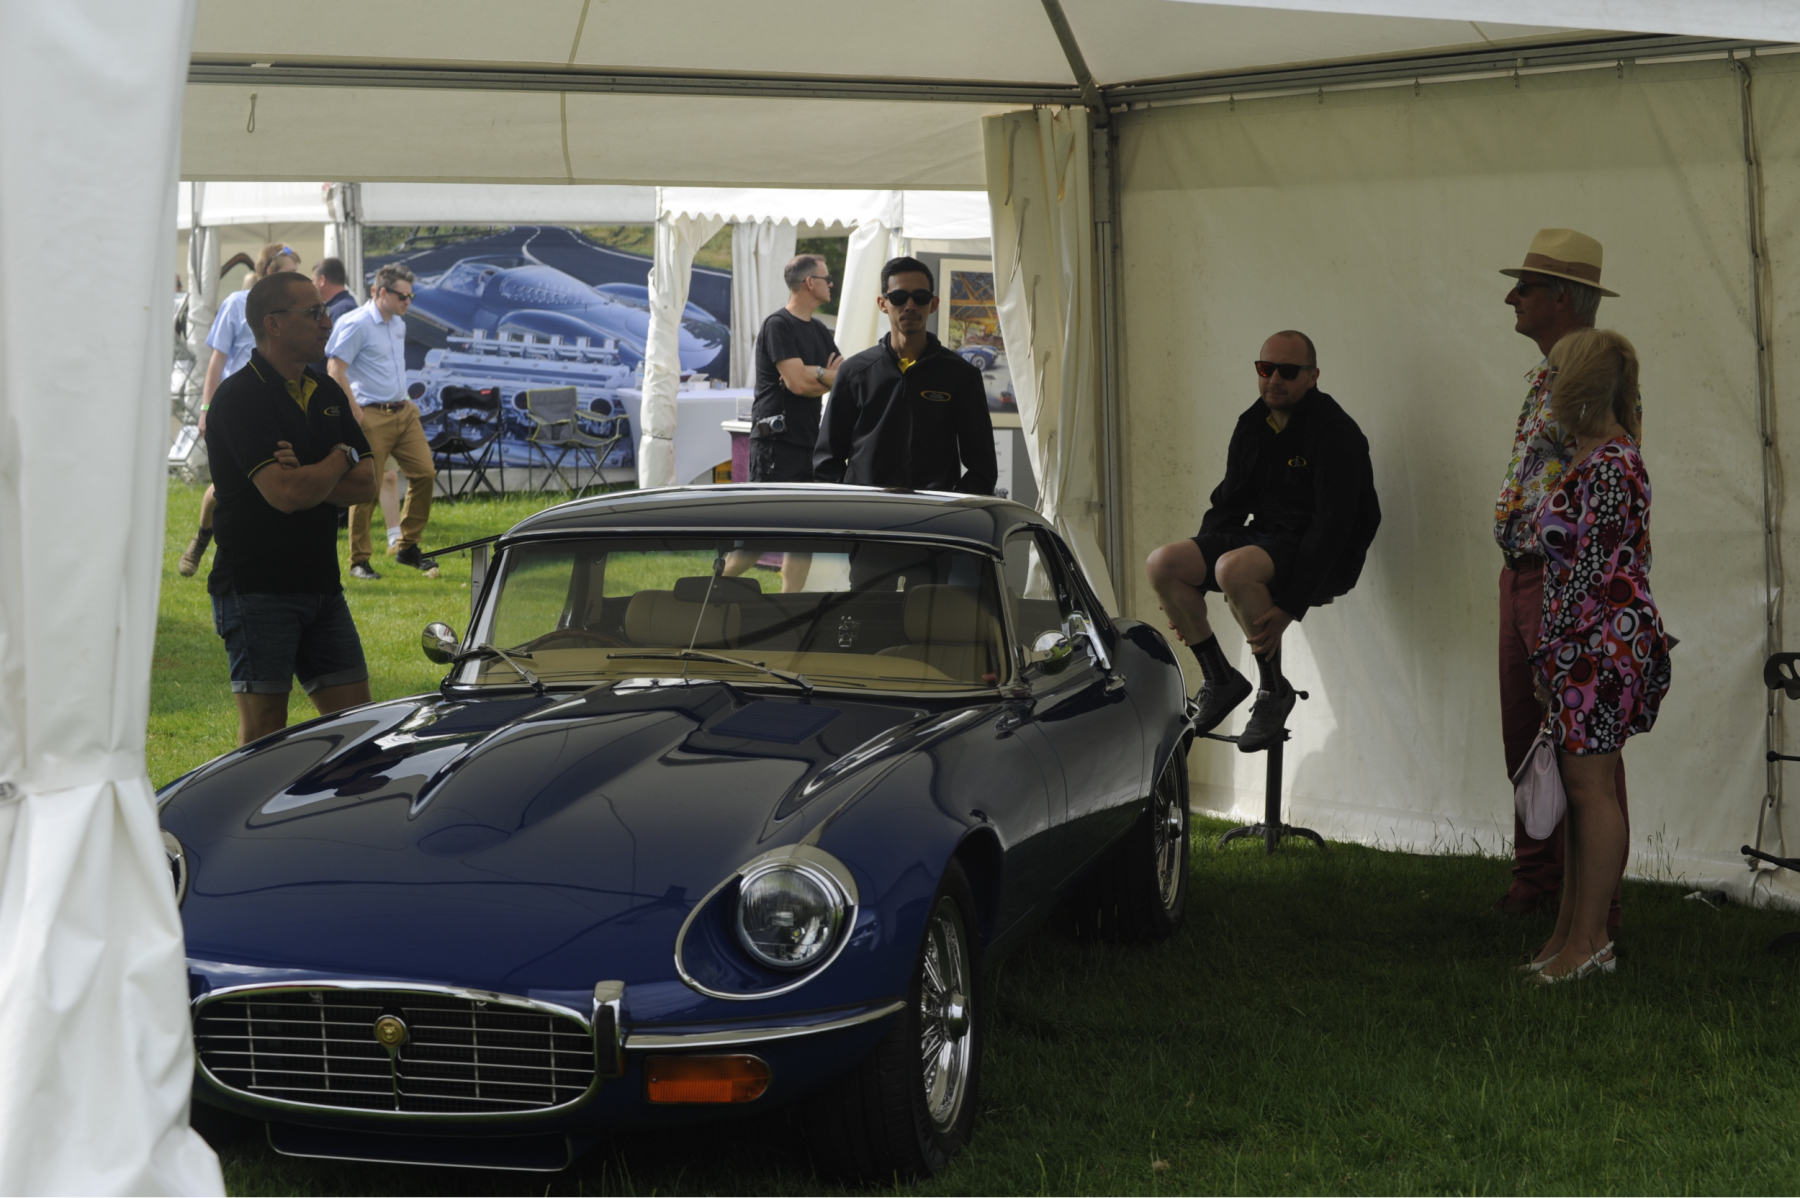 E-type-60-Saturday-photo-by-Abigail-Humphries-221